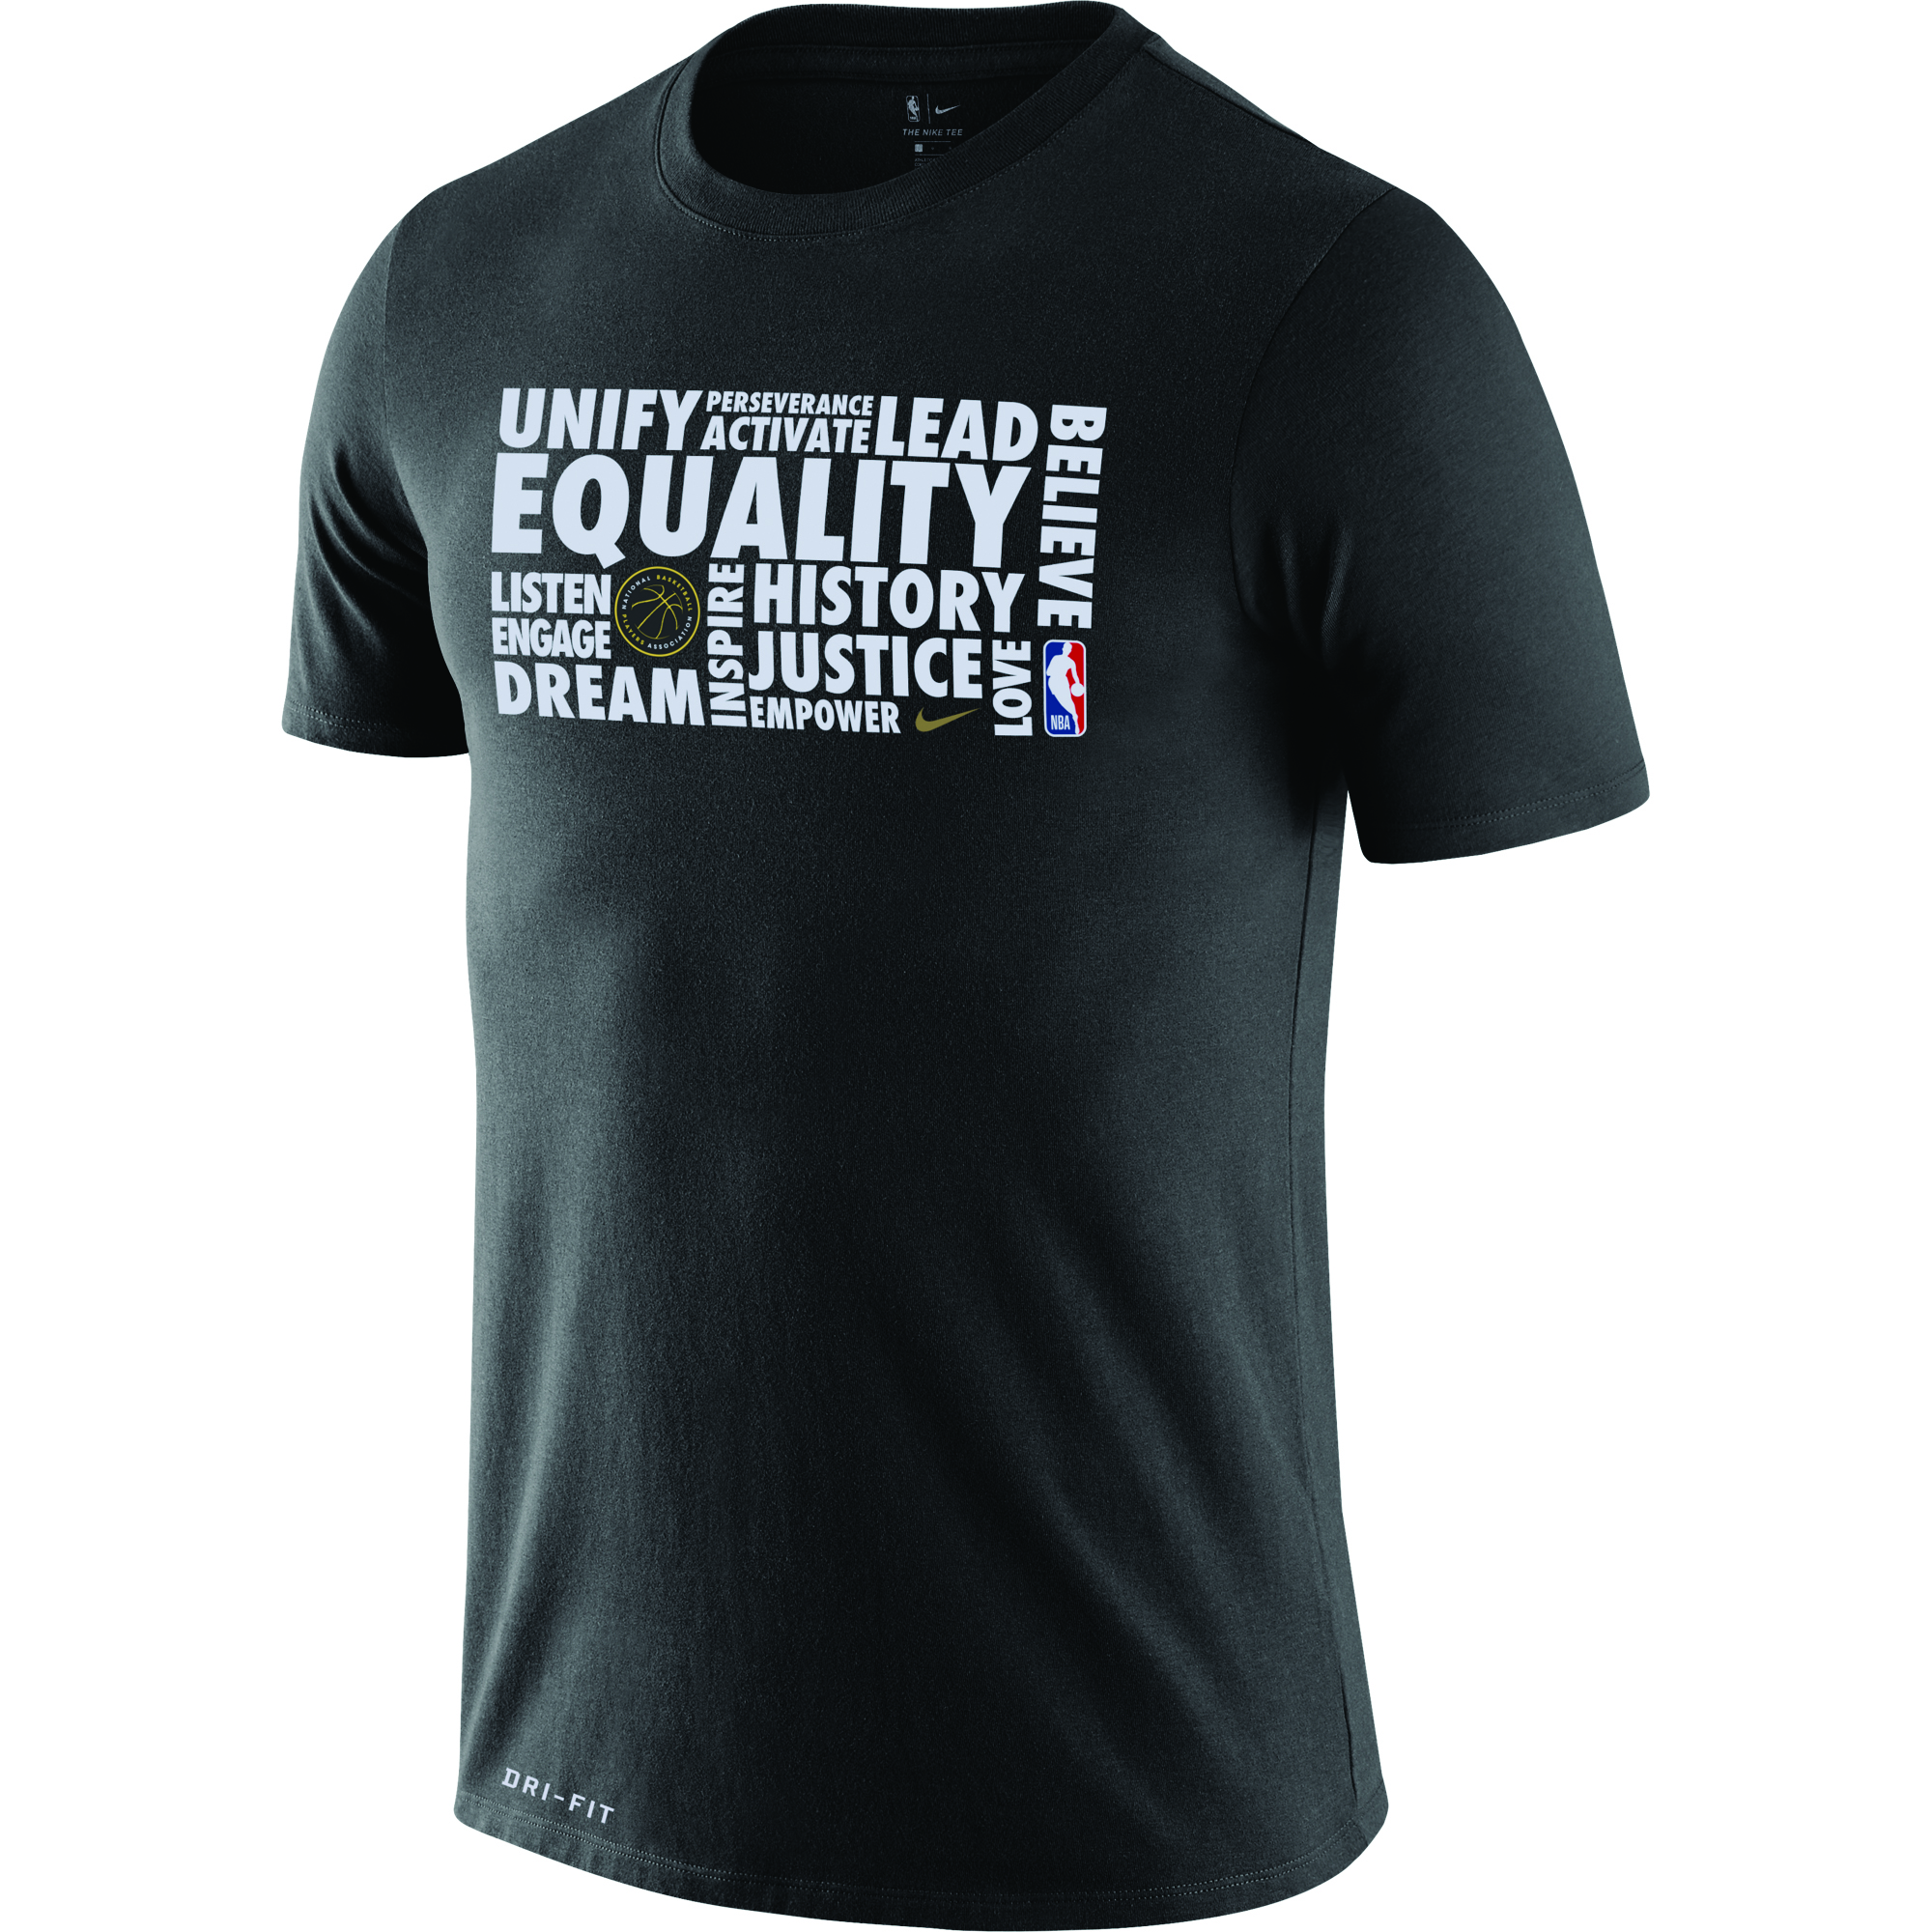 NBA and Nike Debut Black History Month Warmup Shirt with